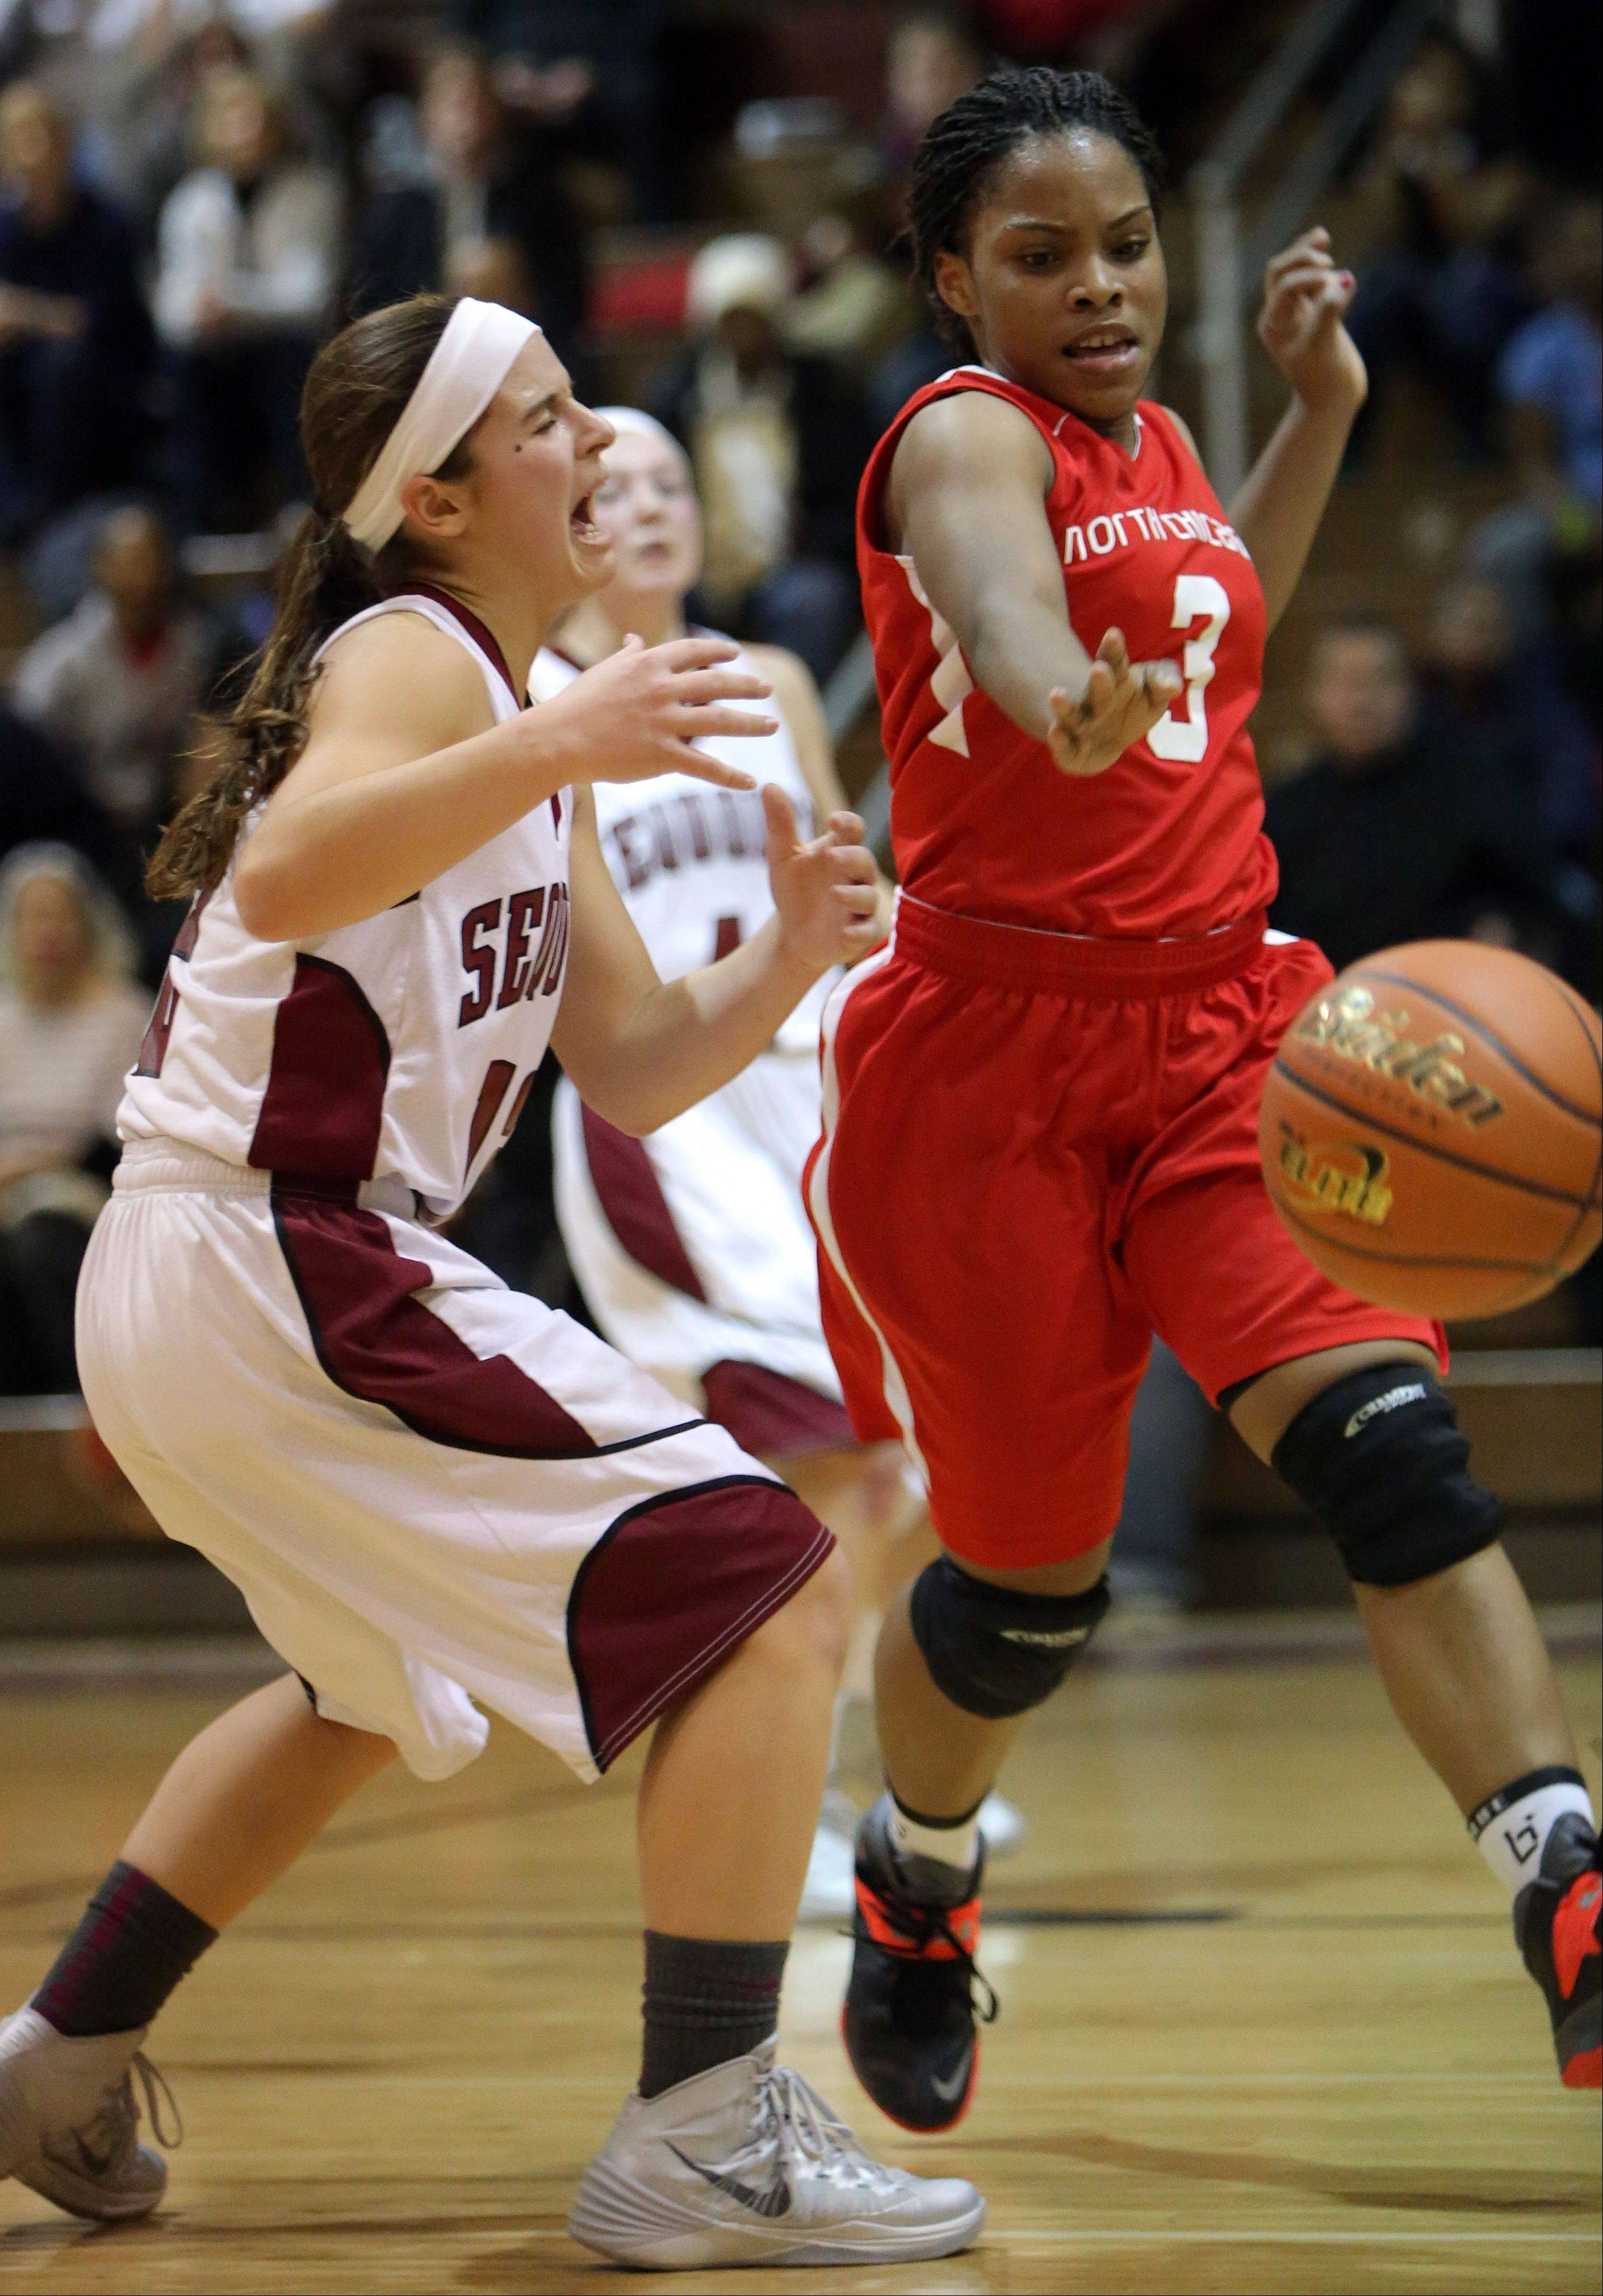 Antioch's Ashley Reiser, left, has the ball stripped by North Chicago's Alexis Means on Wednesday night at Antioch.